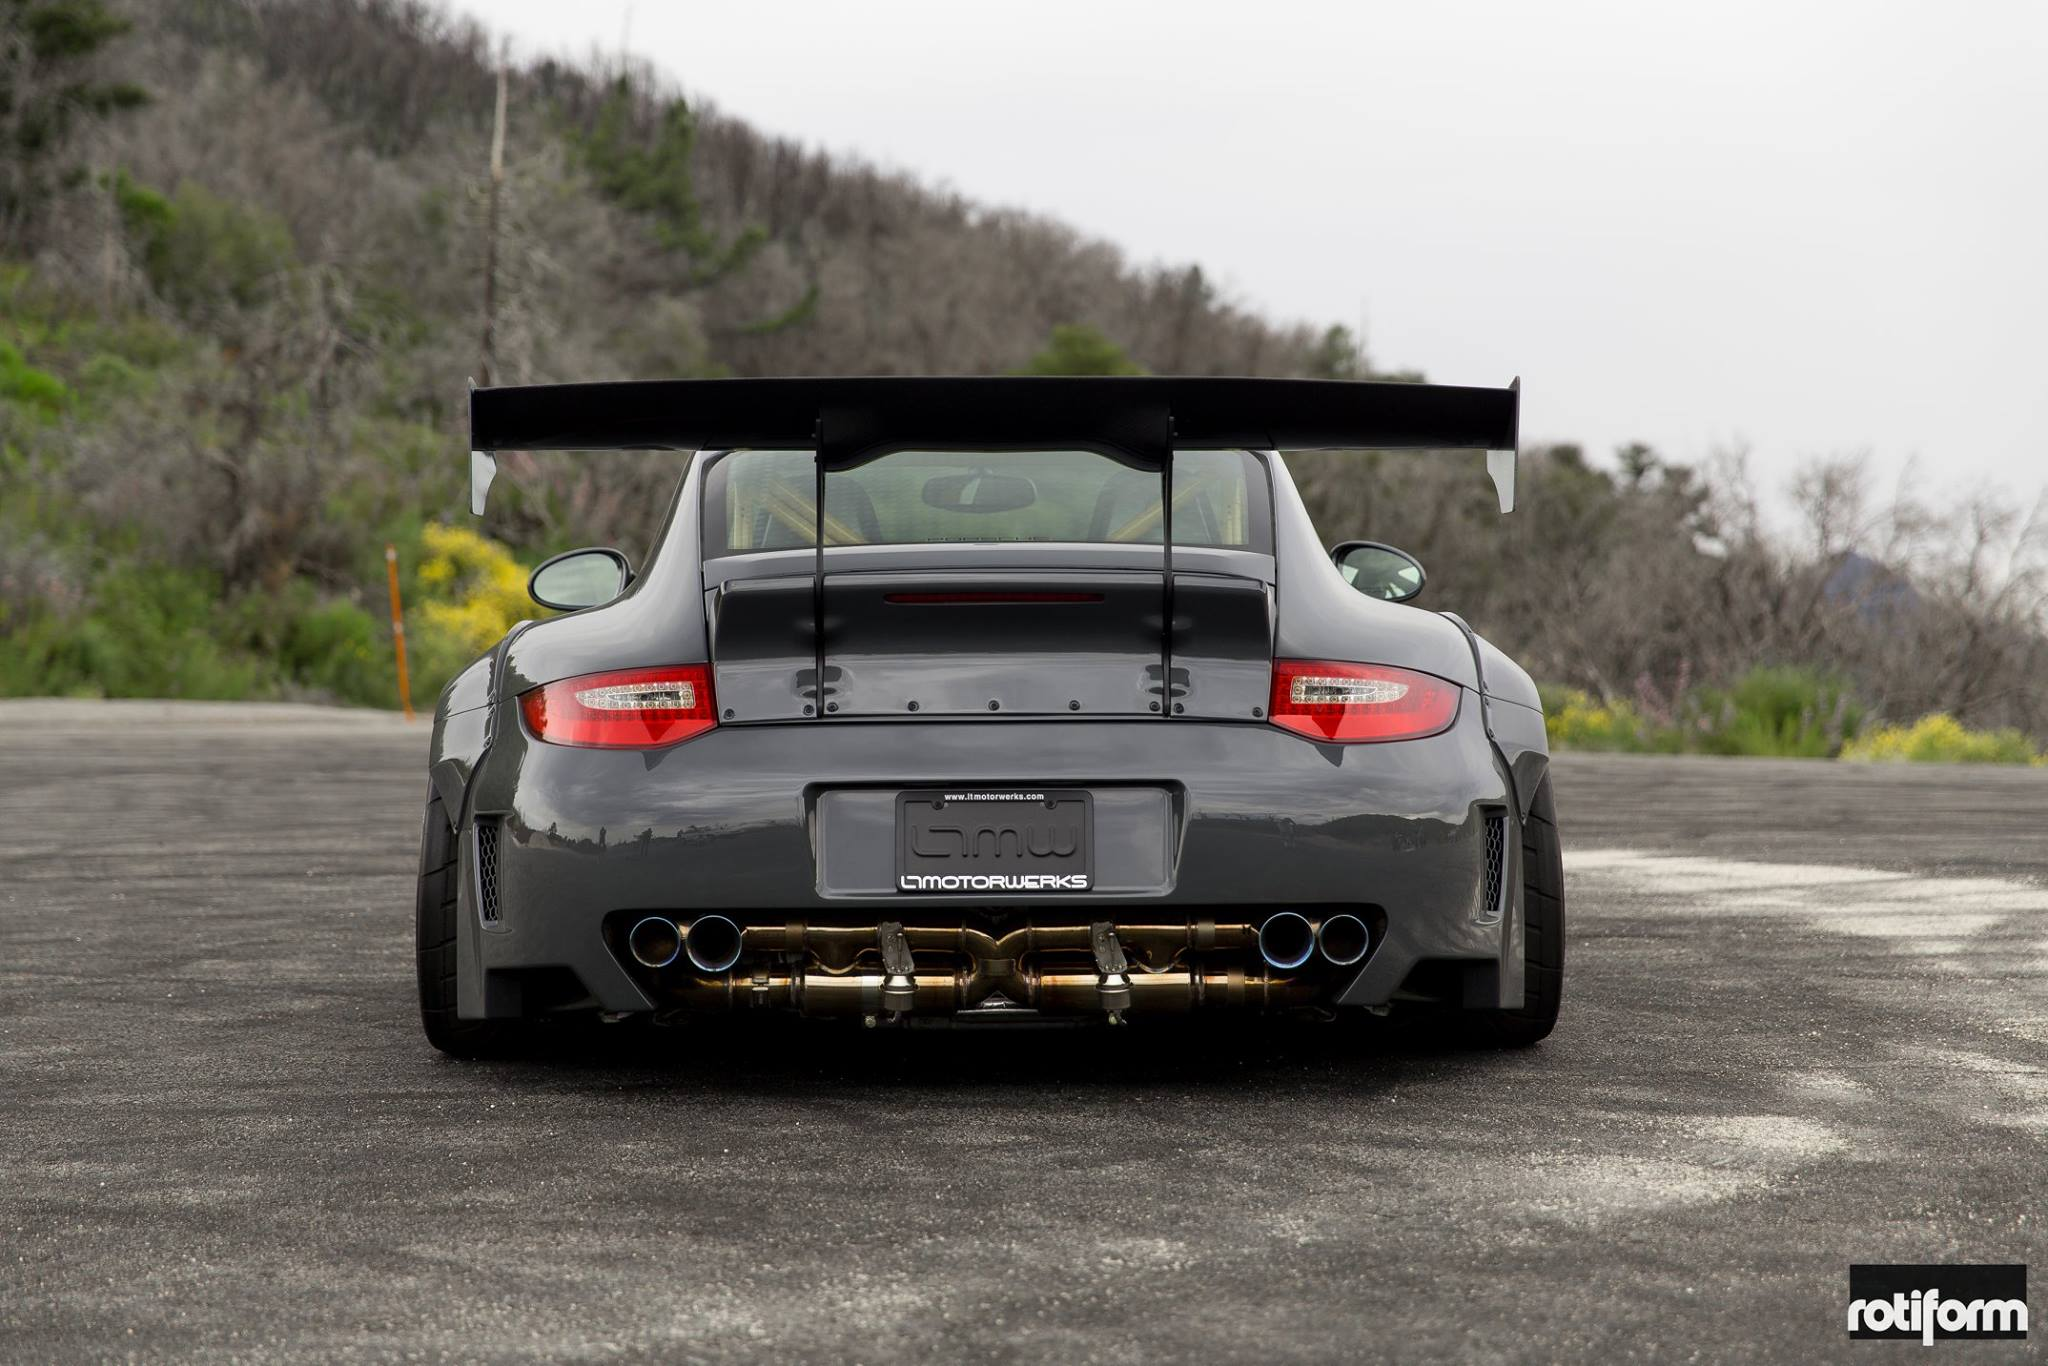 1000 Hp Gtr >> Rotiform Wheels x LTMW Liberty Walk Porsche 997 | THE-LOWDOWN